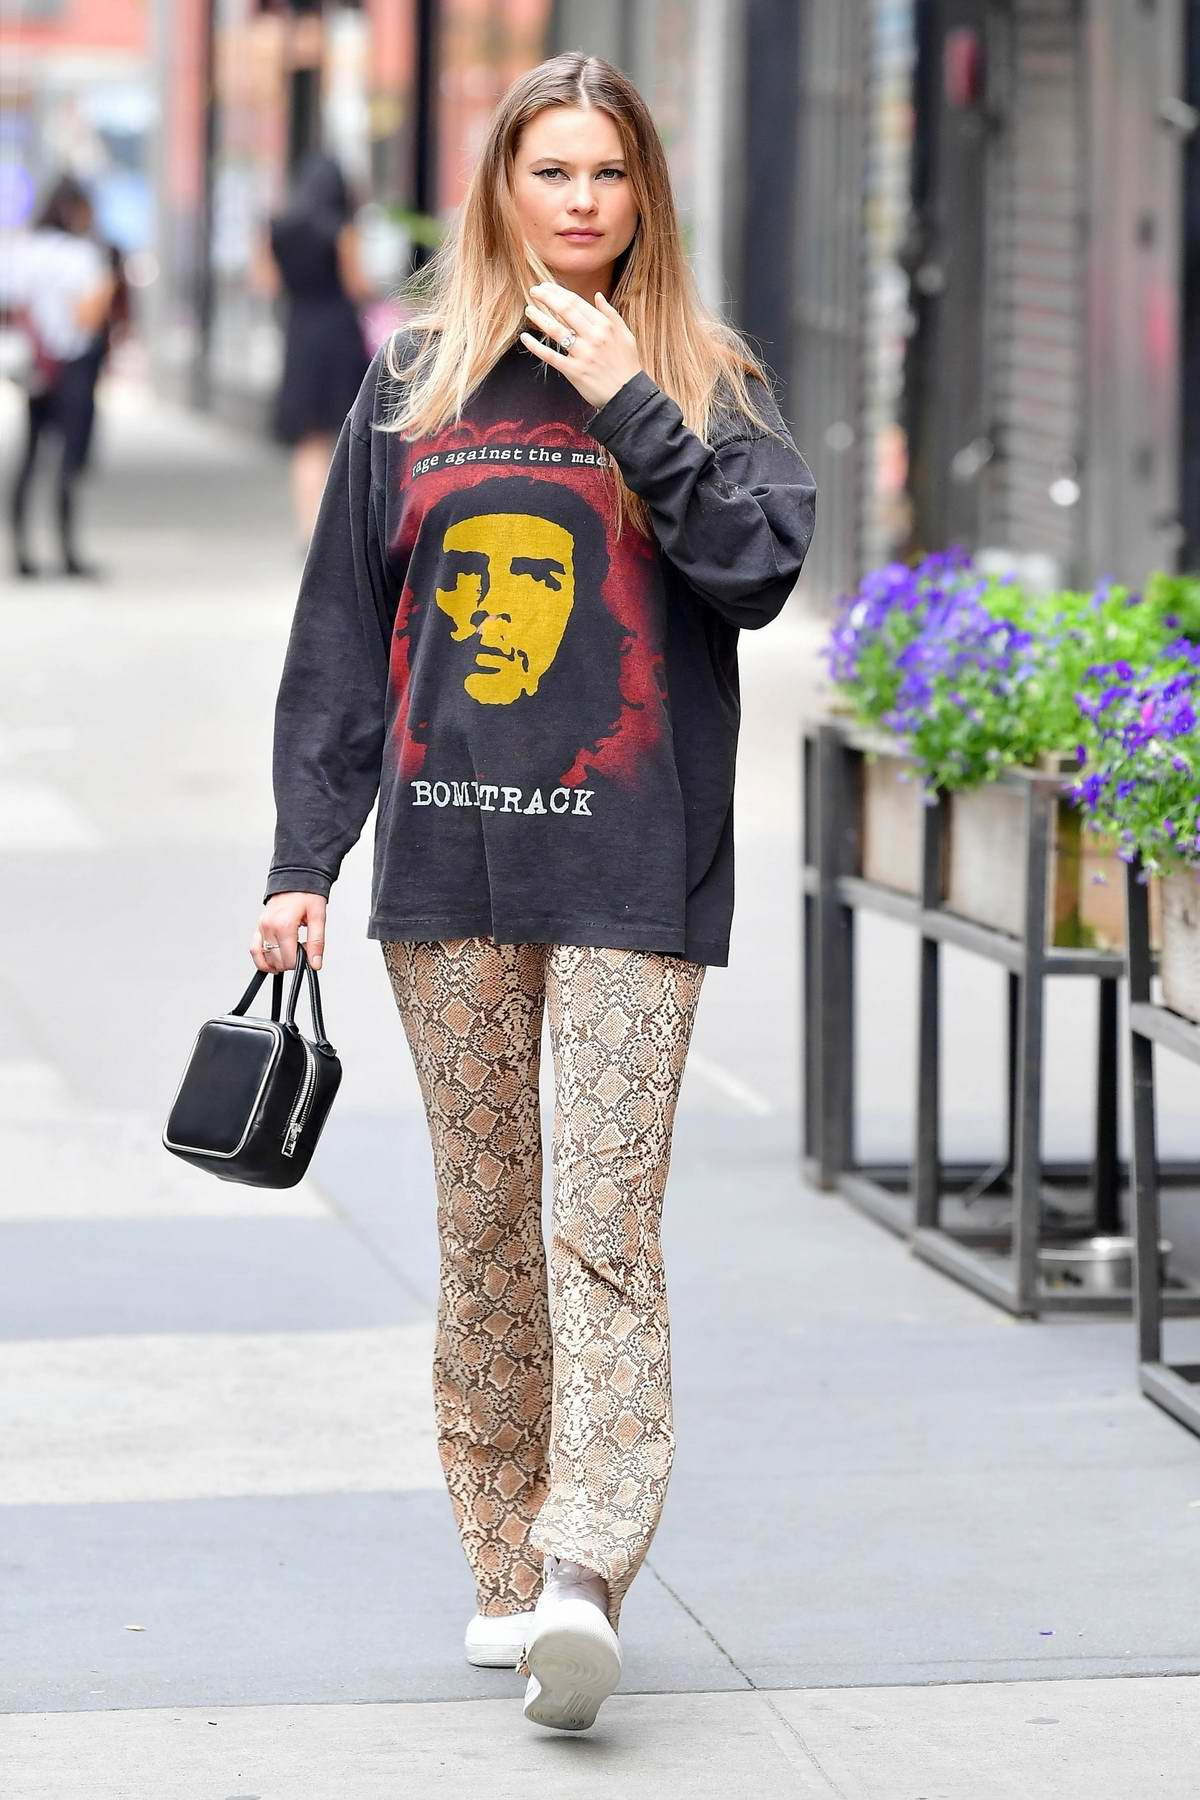 Behati Prinsloo seen leaving after lunch at Le Barricou restaurant in New York City